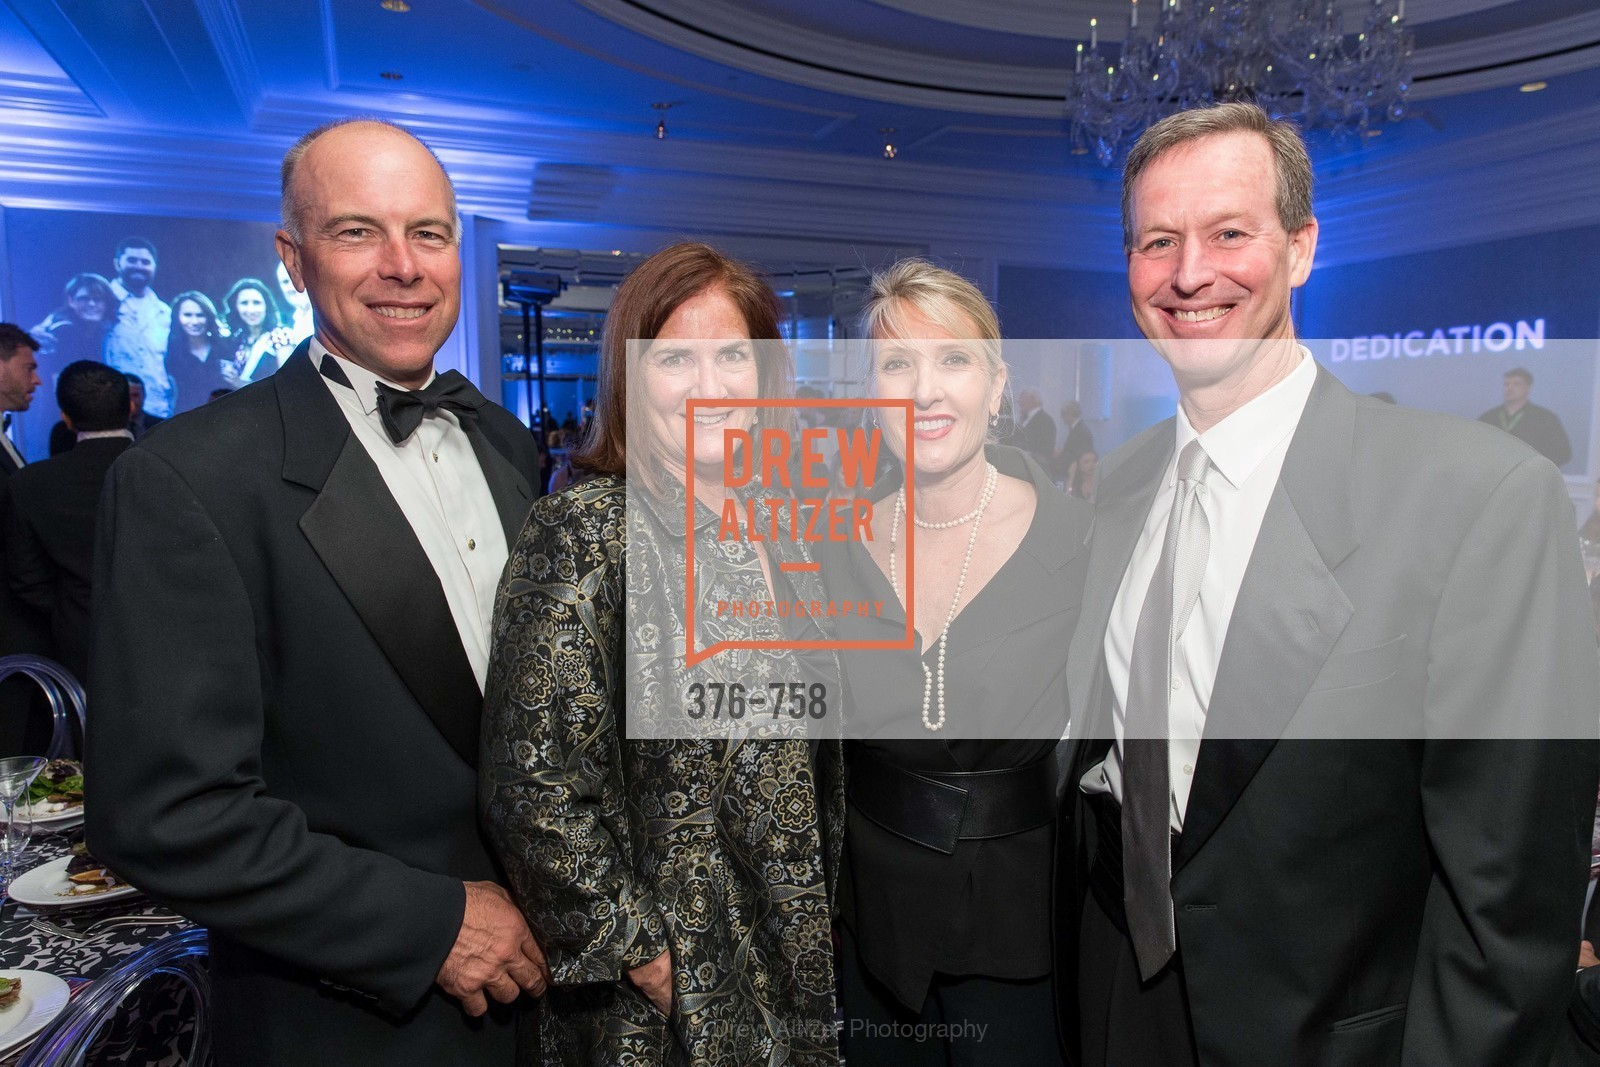 Russ Silvestri, Steph Silvestri, Stephanie Riehle, Senator Paul Riehle, JUVENILE DIABETES RESEARCH FOUNDATION  Hope Gala, US, May 30th, 2015,Drew Altizer, Drew Altizer Photography, full-service agency, private events, San Francisco photographer, photographer california